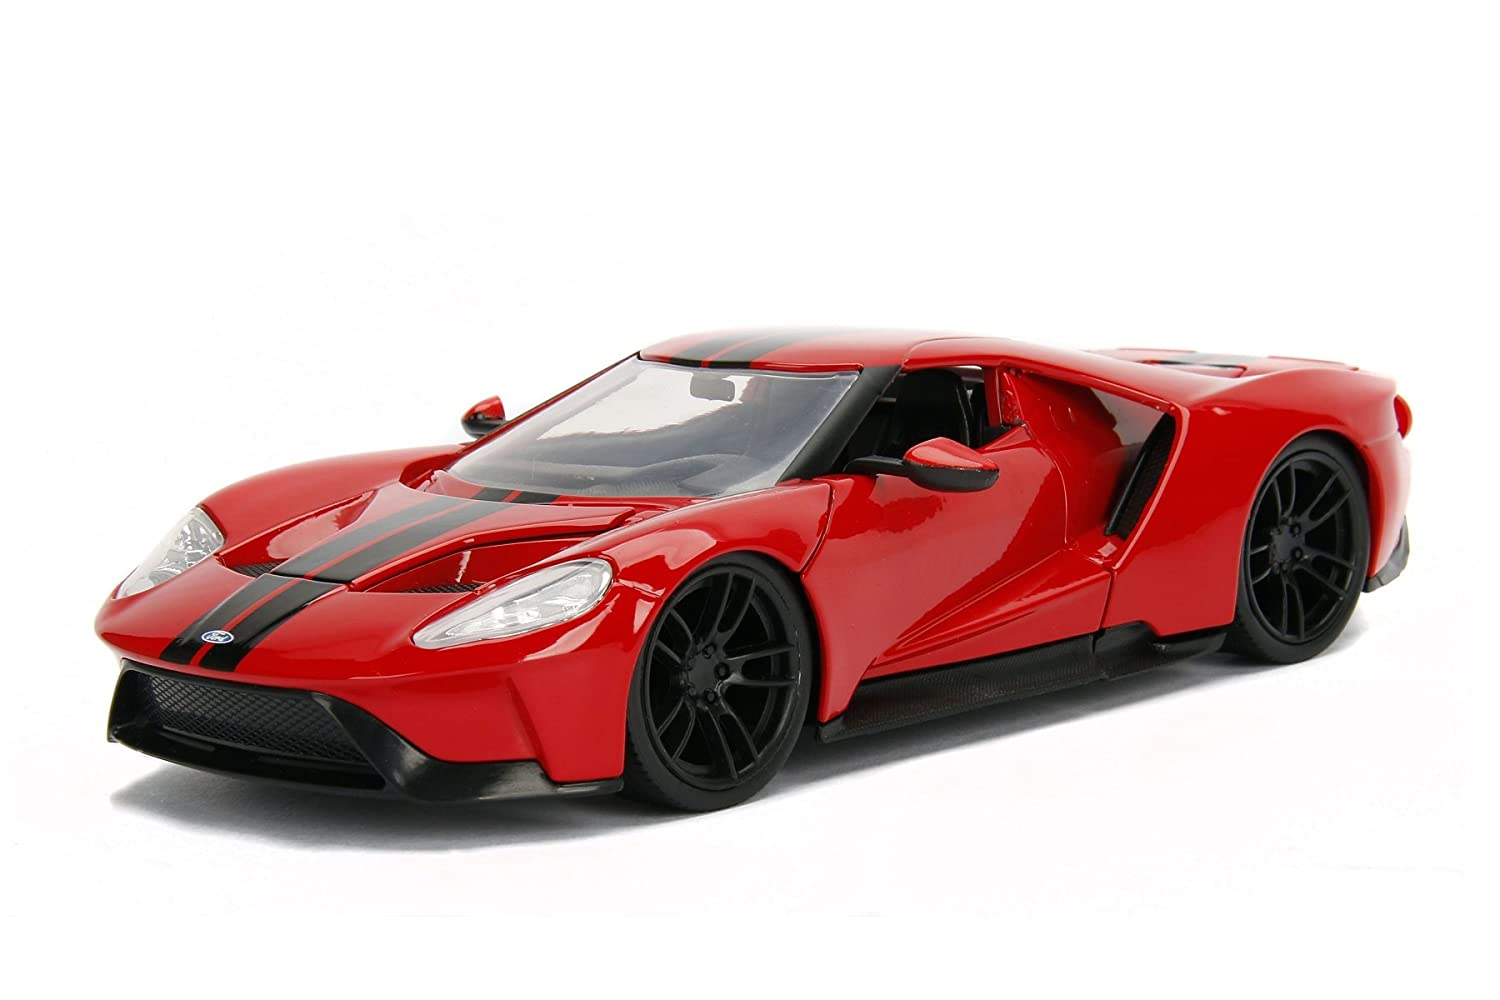 2017 Ford GT Black with Red Stripes 1 24 Diecast Model Car by Jada 99389